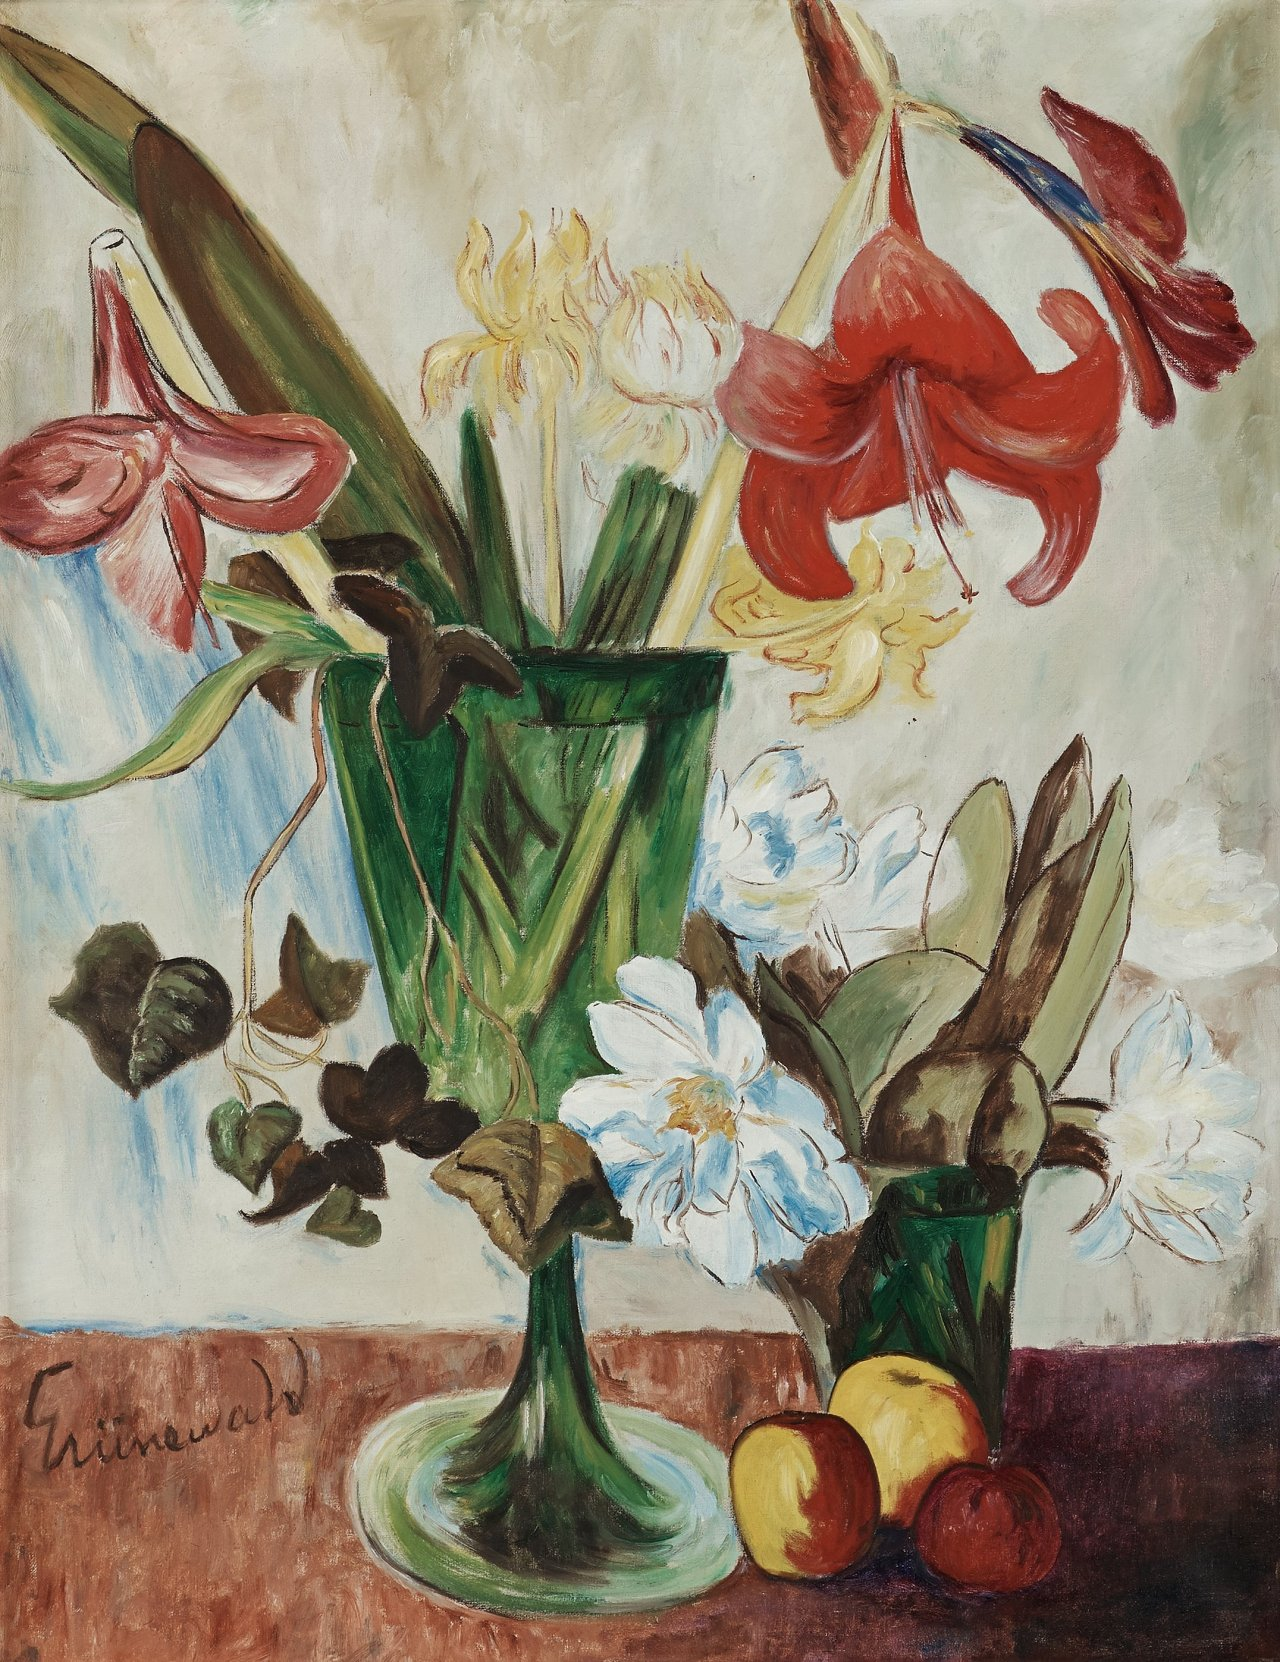 thunderstruck9: Isaac Grünewald (Swedish, 1889-1946), Still life with amaryllis and apples. Canvas, 90 x 71 cm.